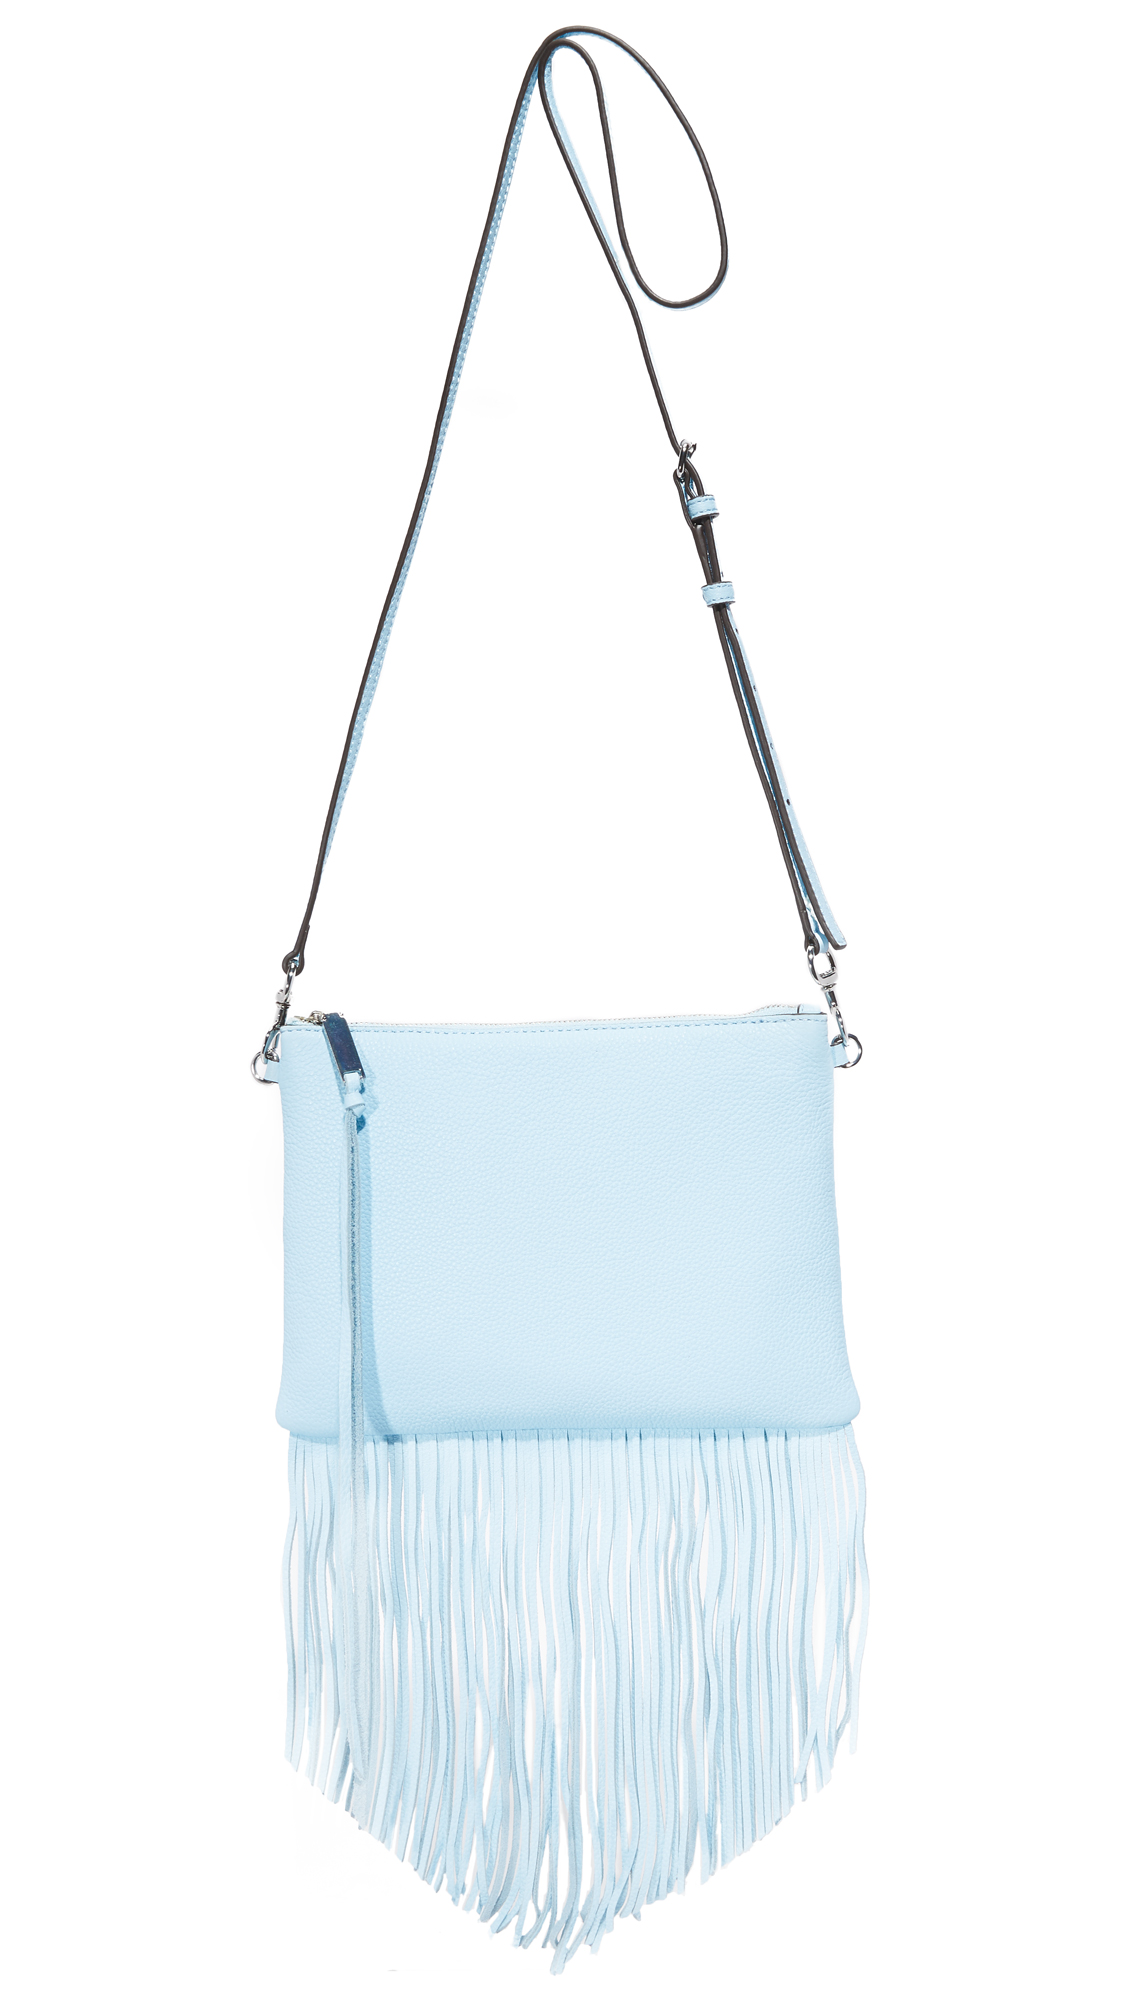 Rebecca Minkoff Fringe Jon Cross Body Bag - Sky